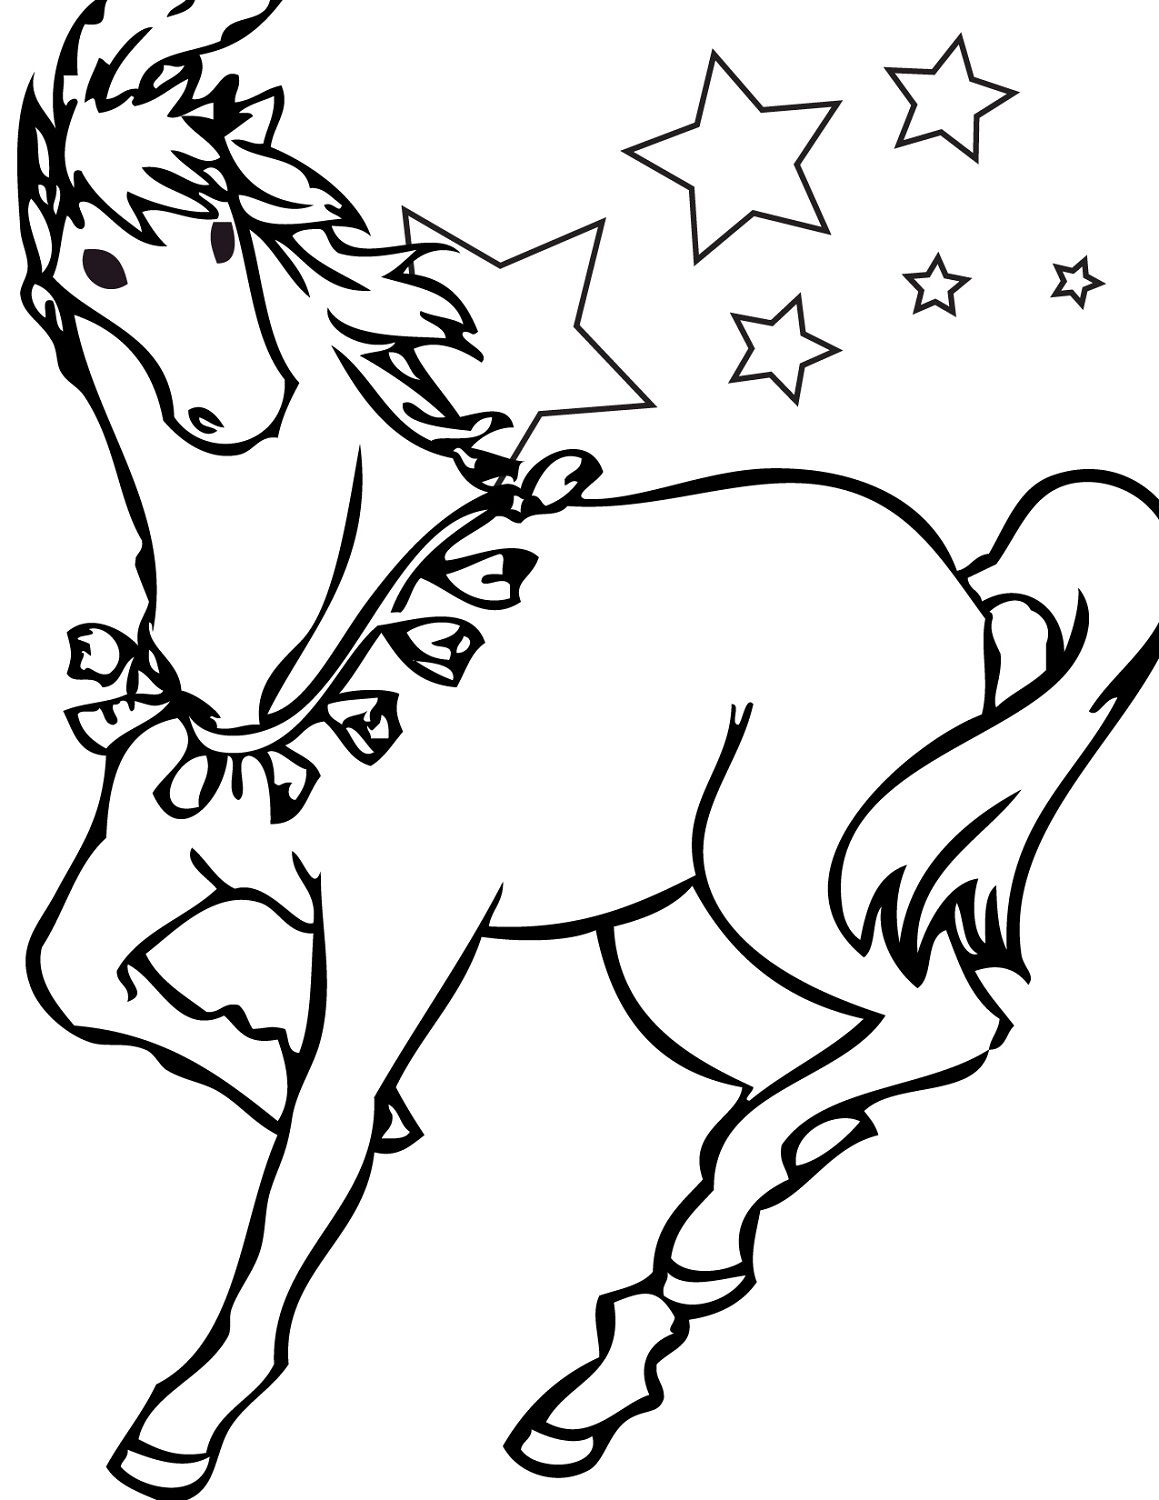 Horse Color Sheets For Children Horse Coloring Books Horse Coloring Pages Horse Coloring